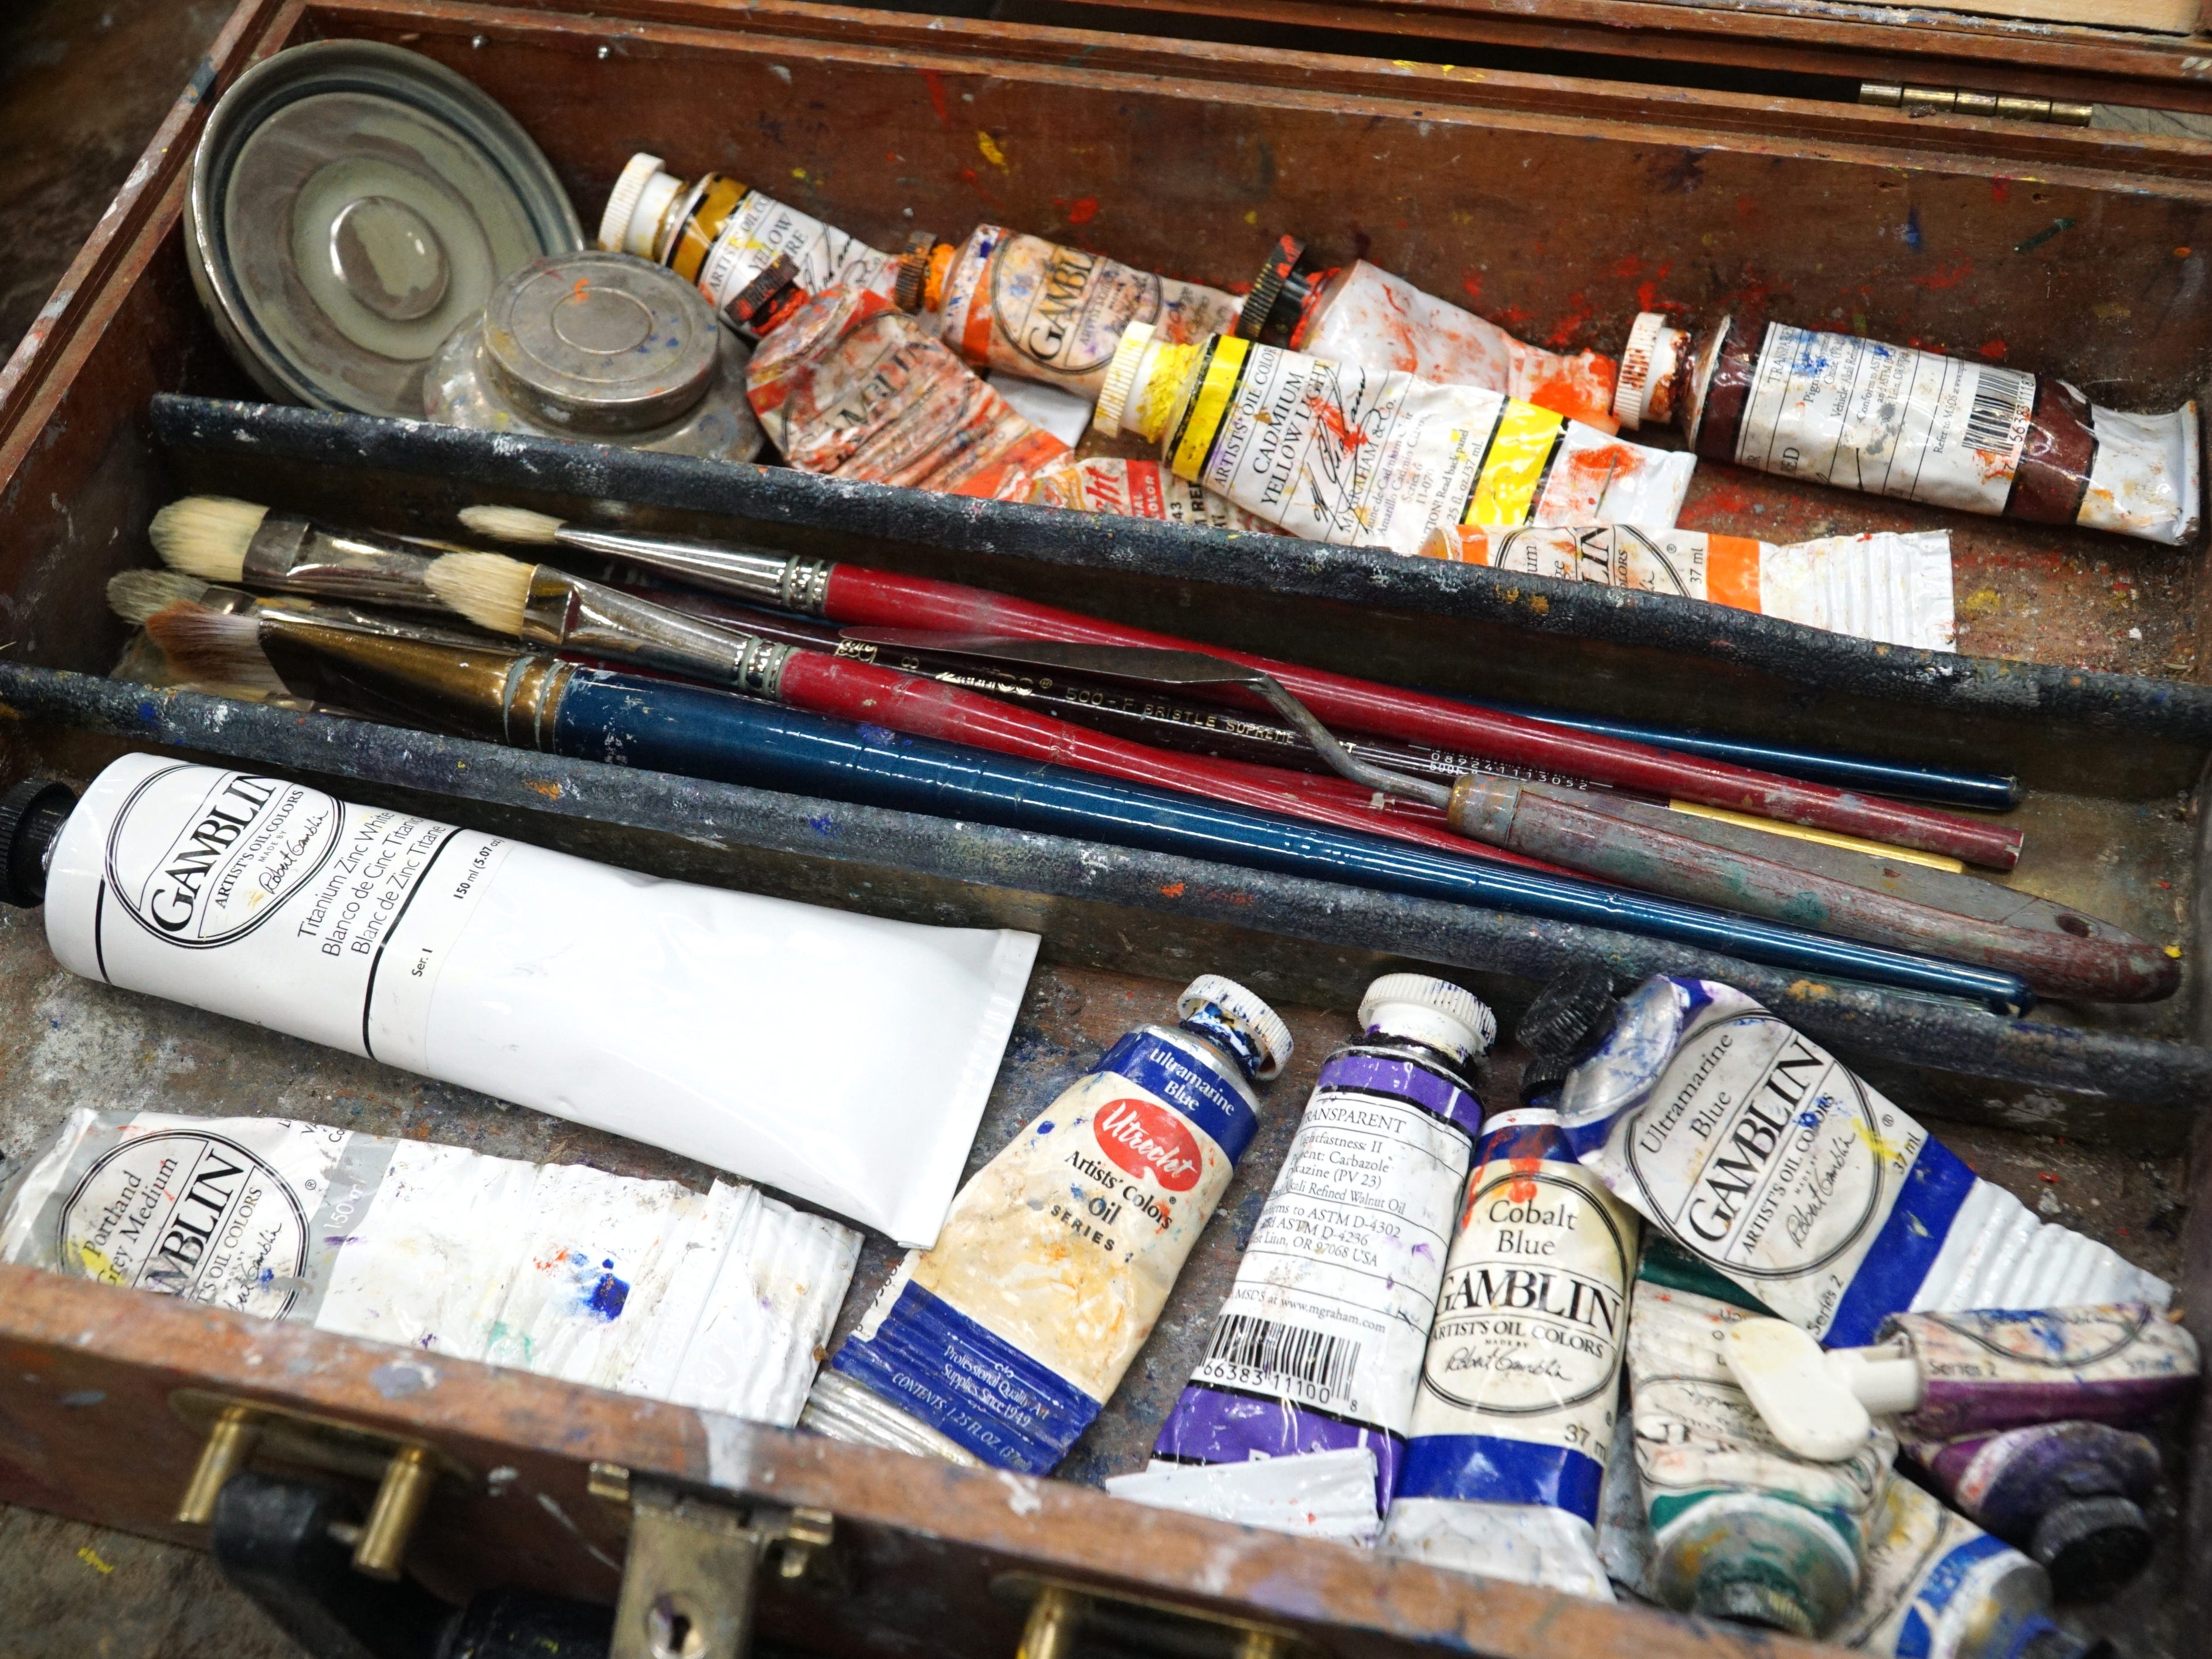 An artist's oil painting box at Milford's Suzanne Haskew Arts Center.